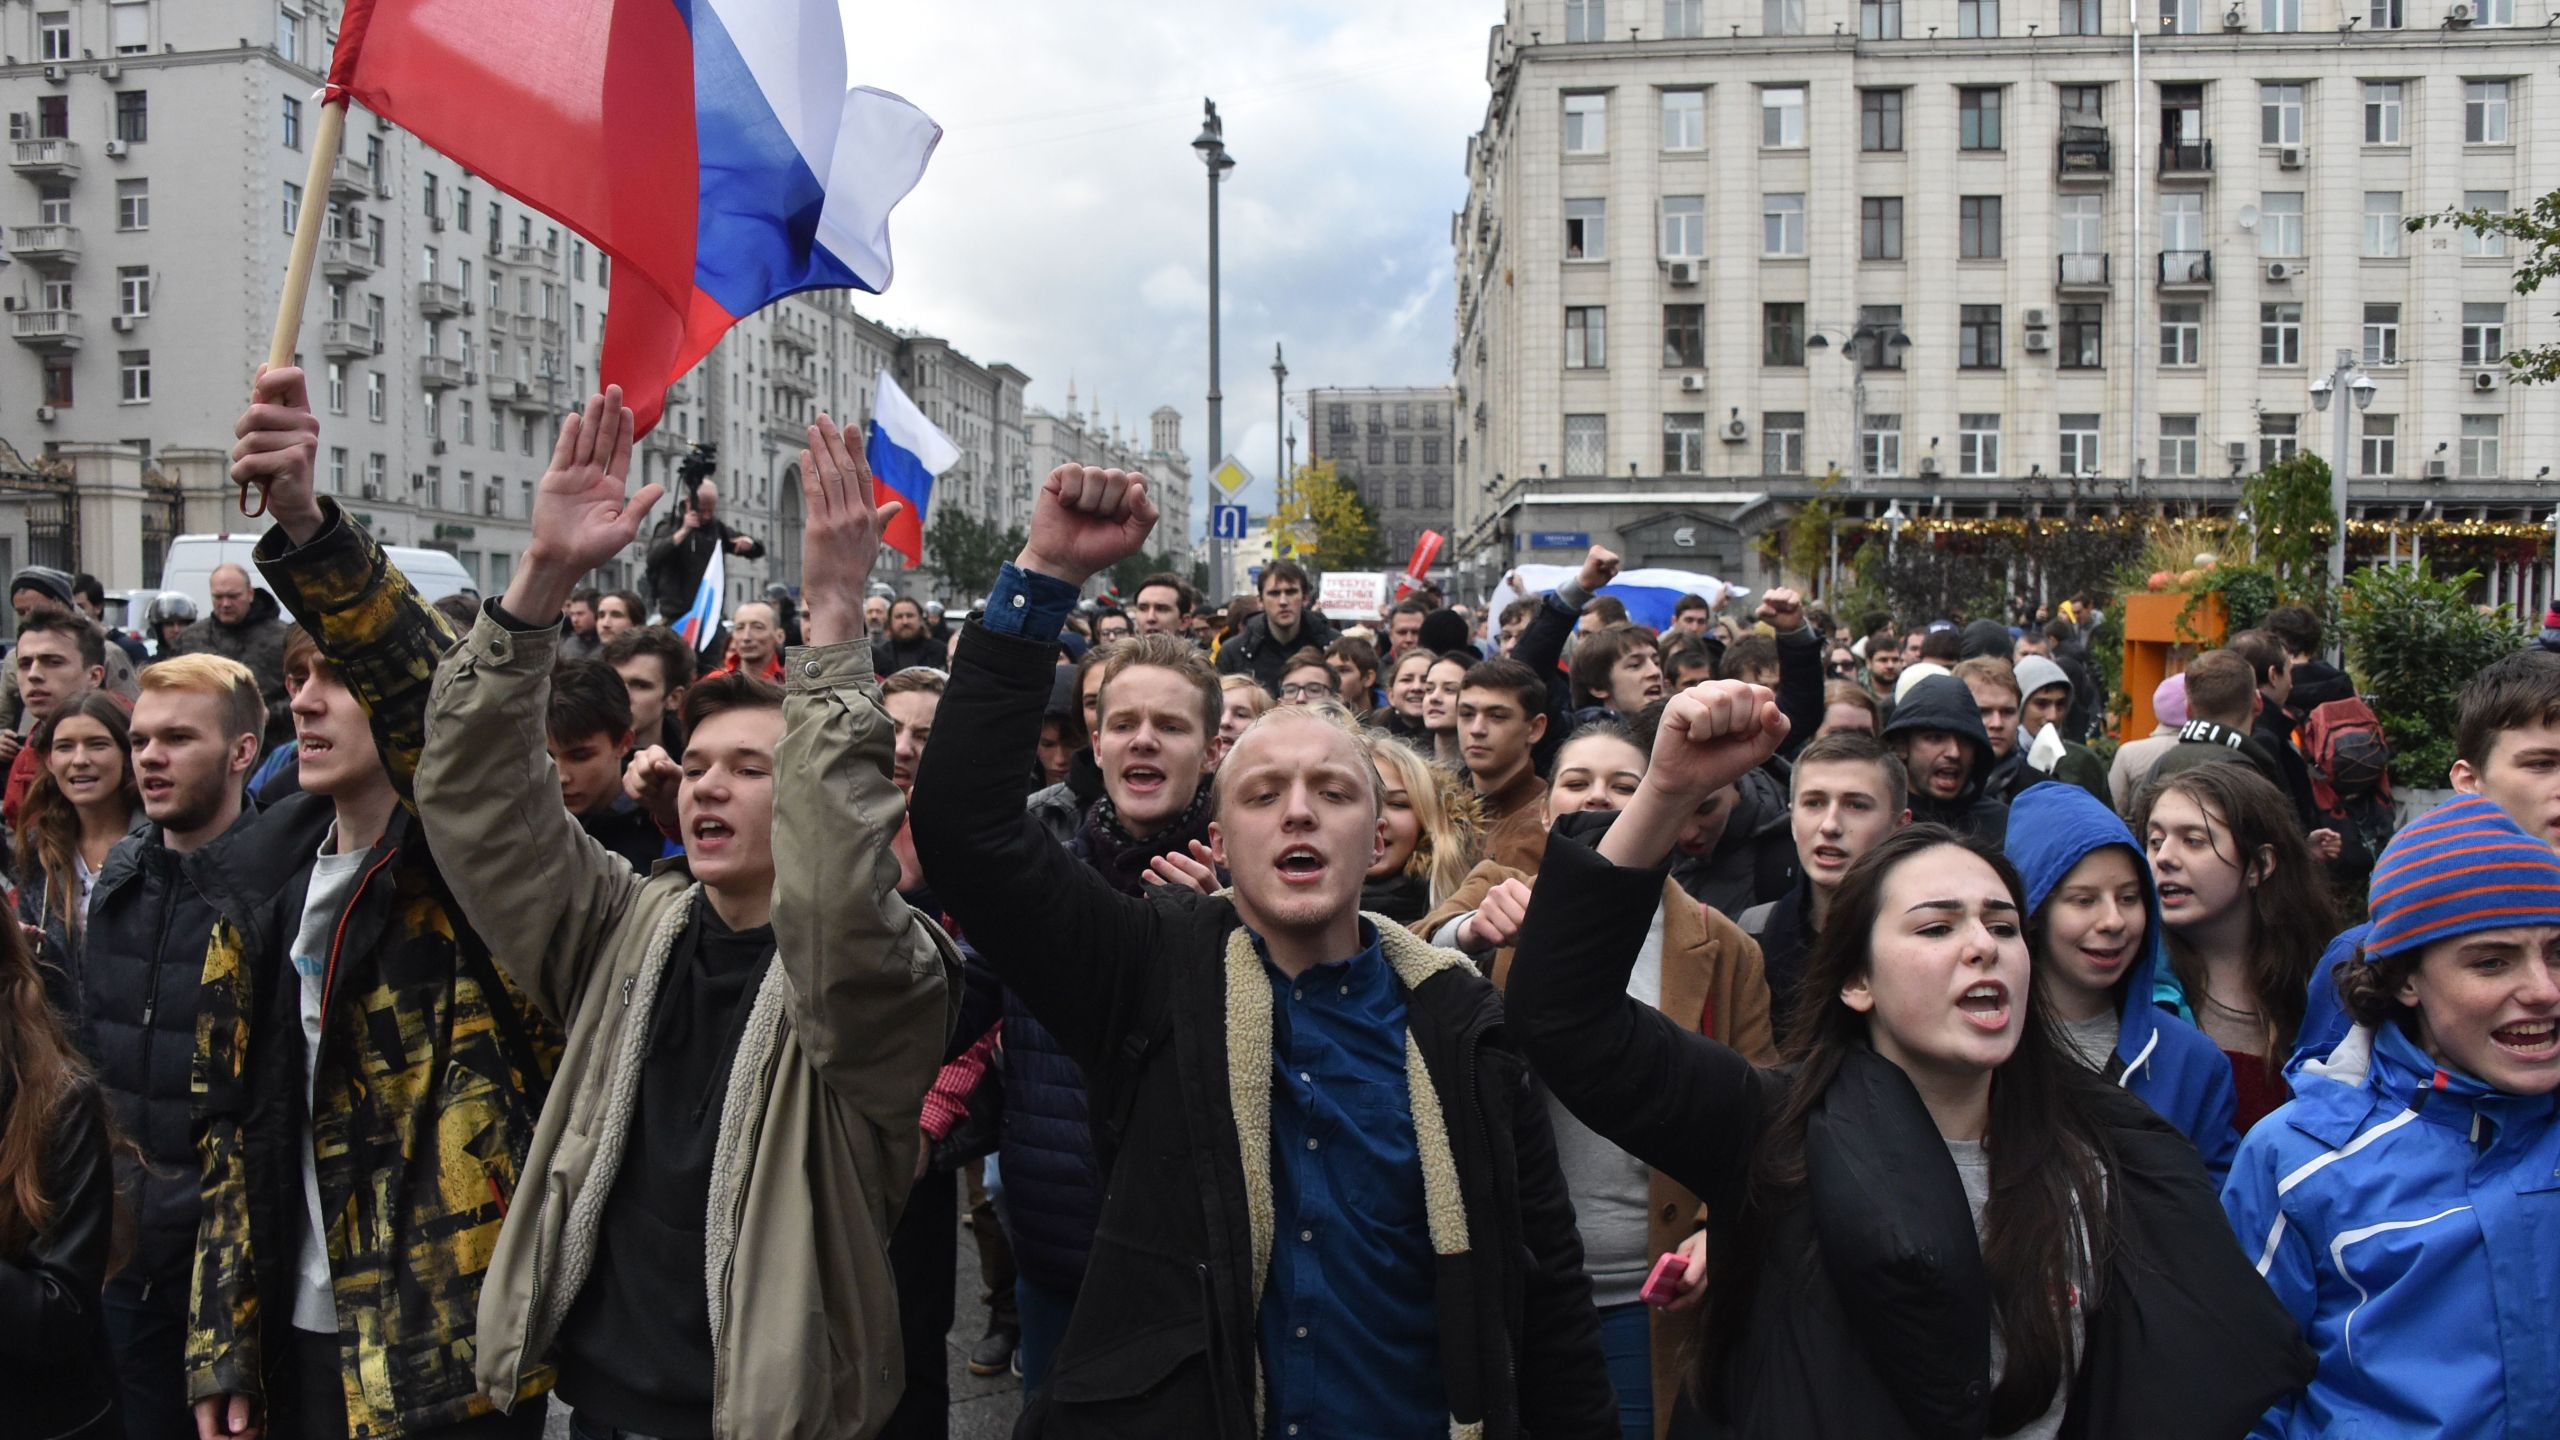 Demonstrators walk along Tverskaya Street during an unauthorized anti-Kremlin rally called by opposition leader Alexei Navalny, who is serving a 20-day jail sentence, in downtown Moscow on Oct. 7, 2017, President Vladimir Putin's 65th birthday. (Credit: Vasily Maximov / AFP / Getty Images)